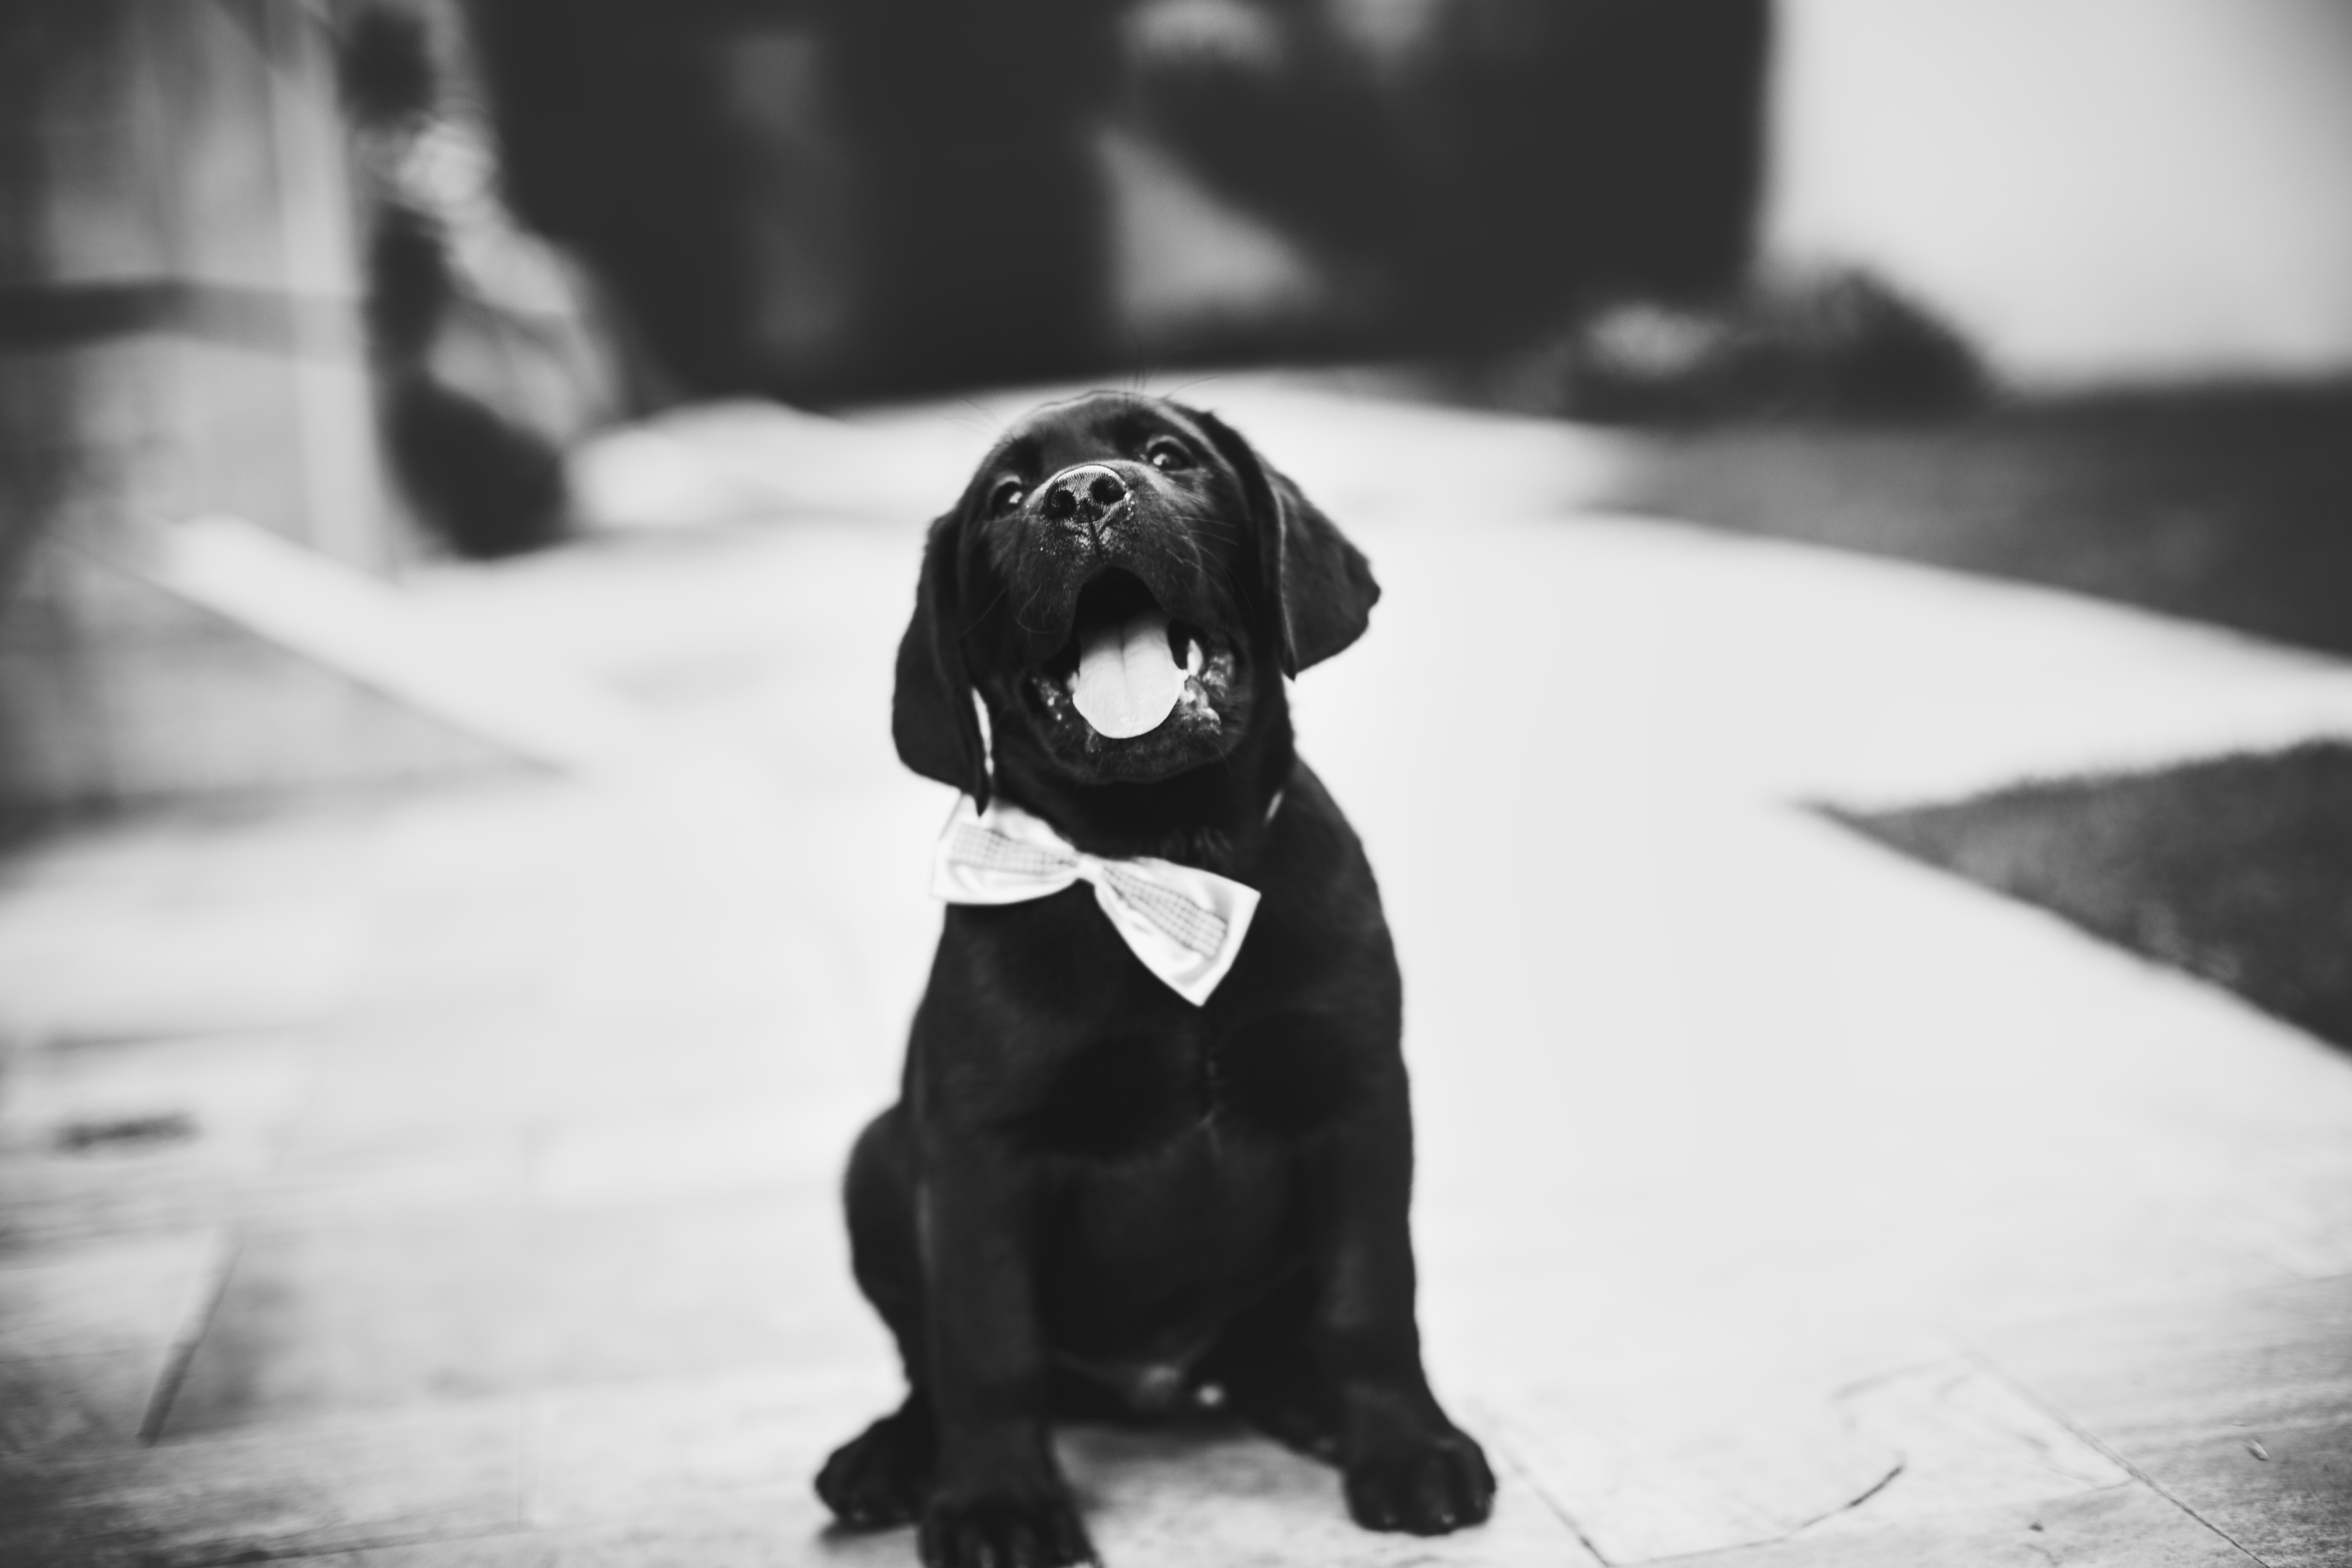 57491 download wallpaper Animals, Puppy, Dog, Bw, Chb, Bow Tie, Butterfly Tie screensavers and pictures for free